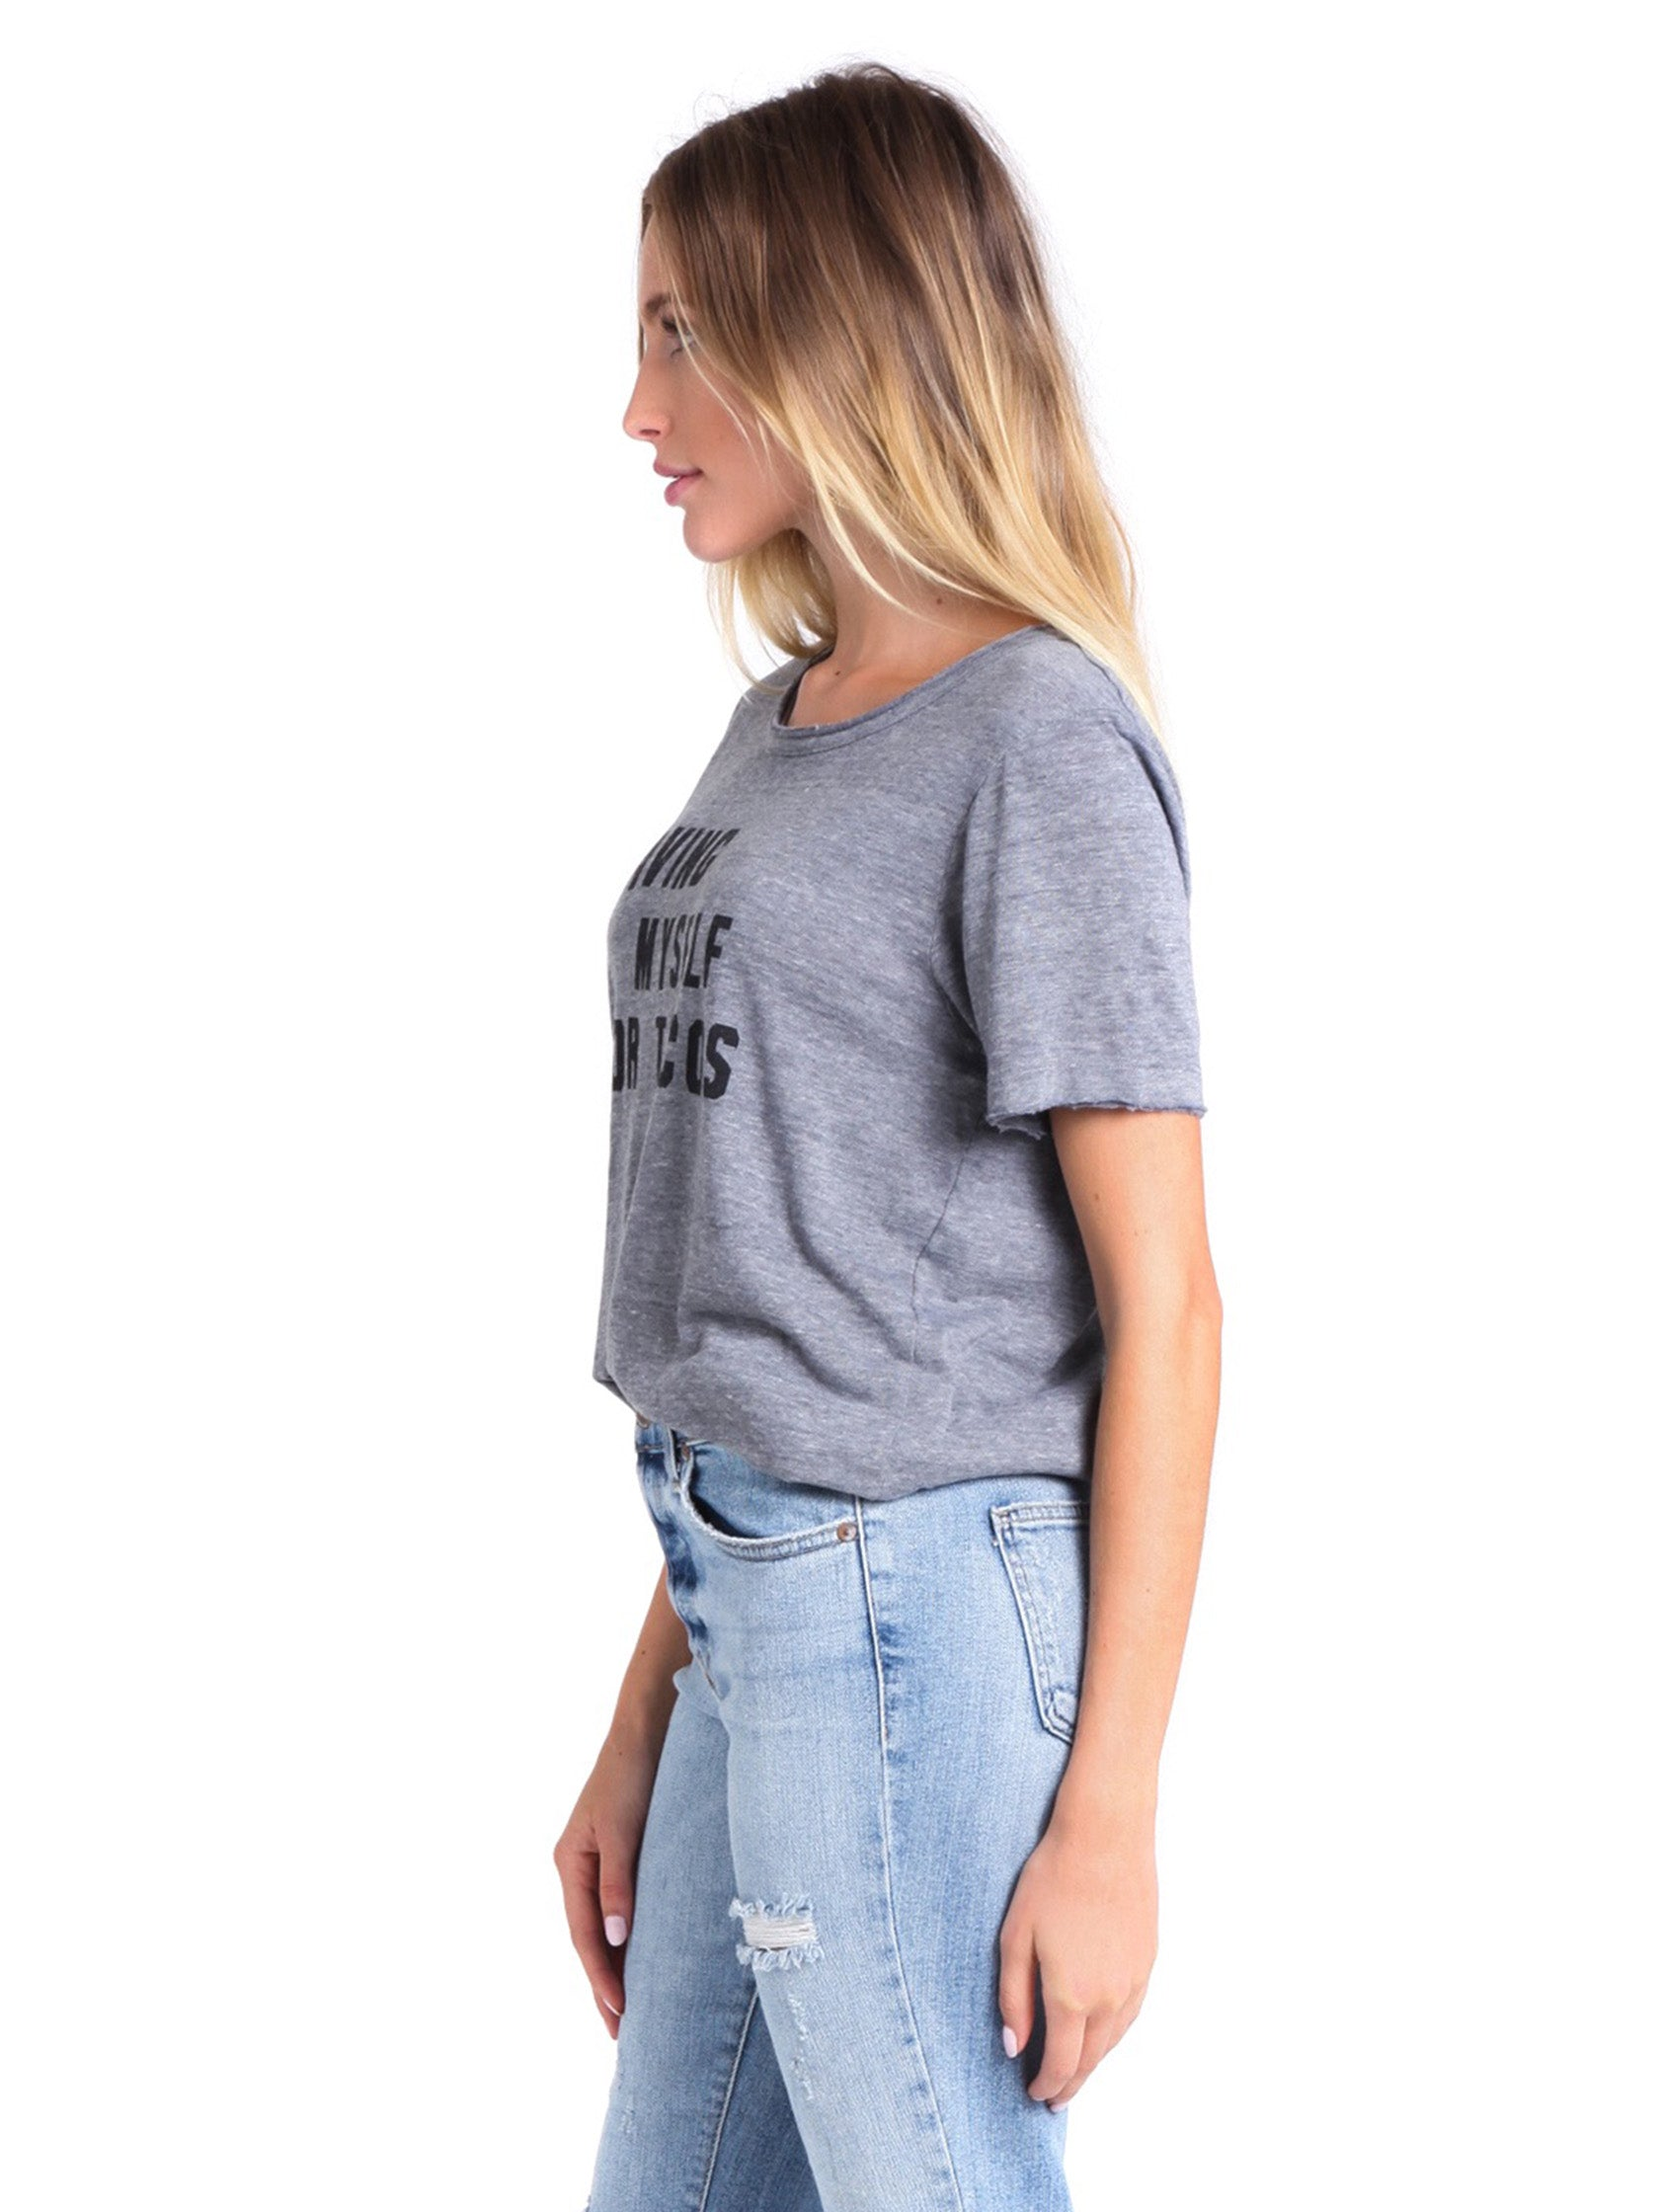 Women wearing a top rental from Chaser called Taco Me Tee